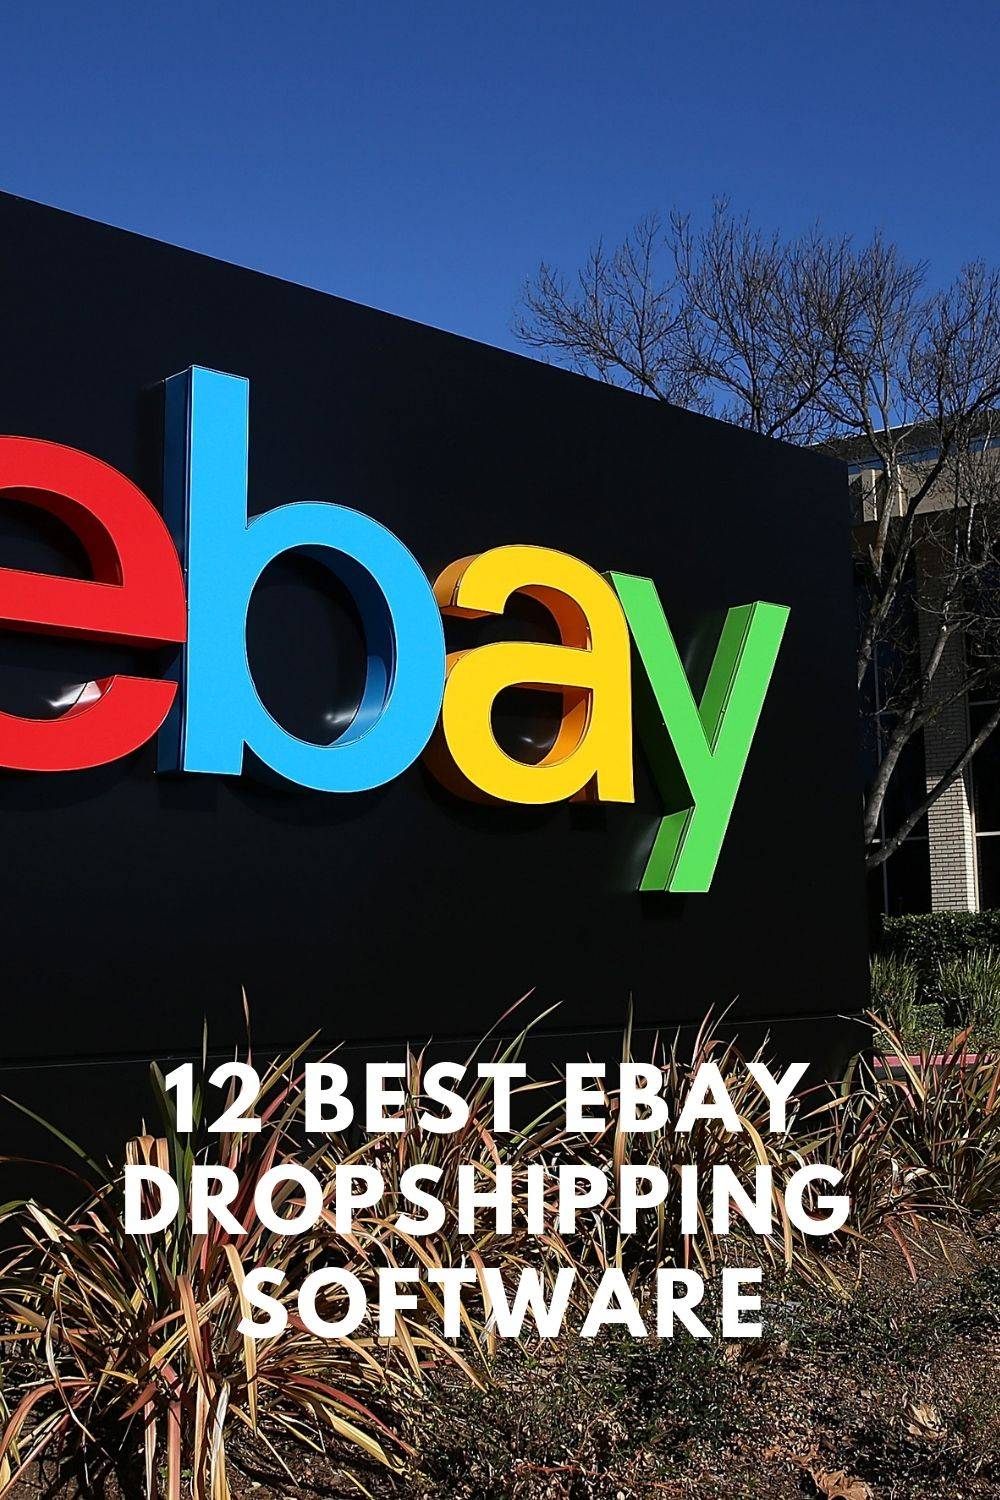 12 Best eBay Dropshipping Software | dropshipping for